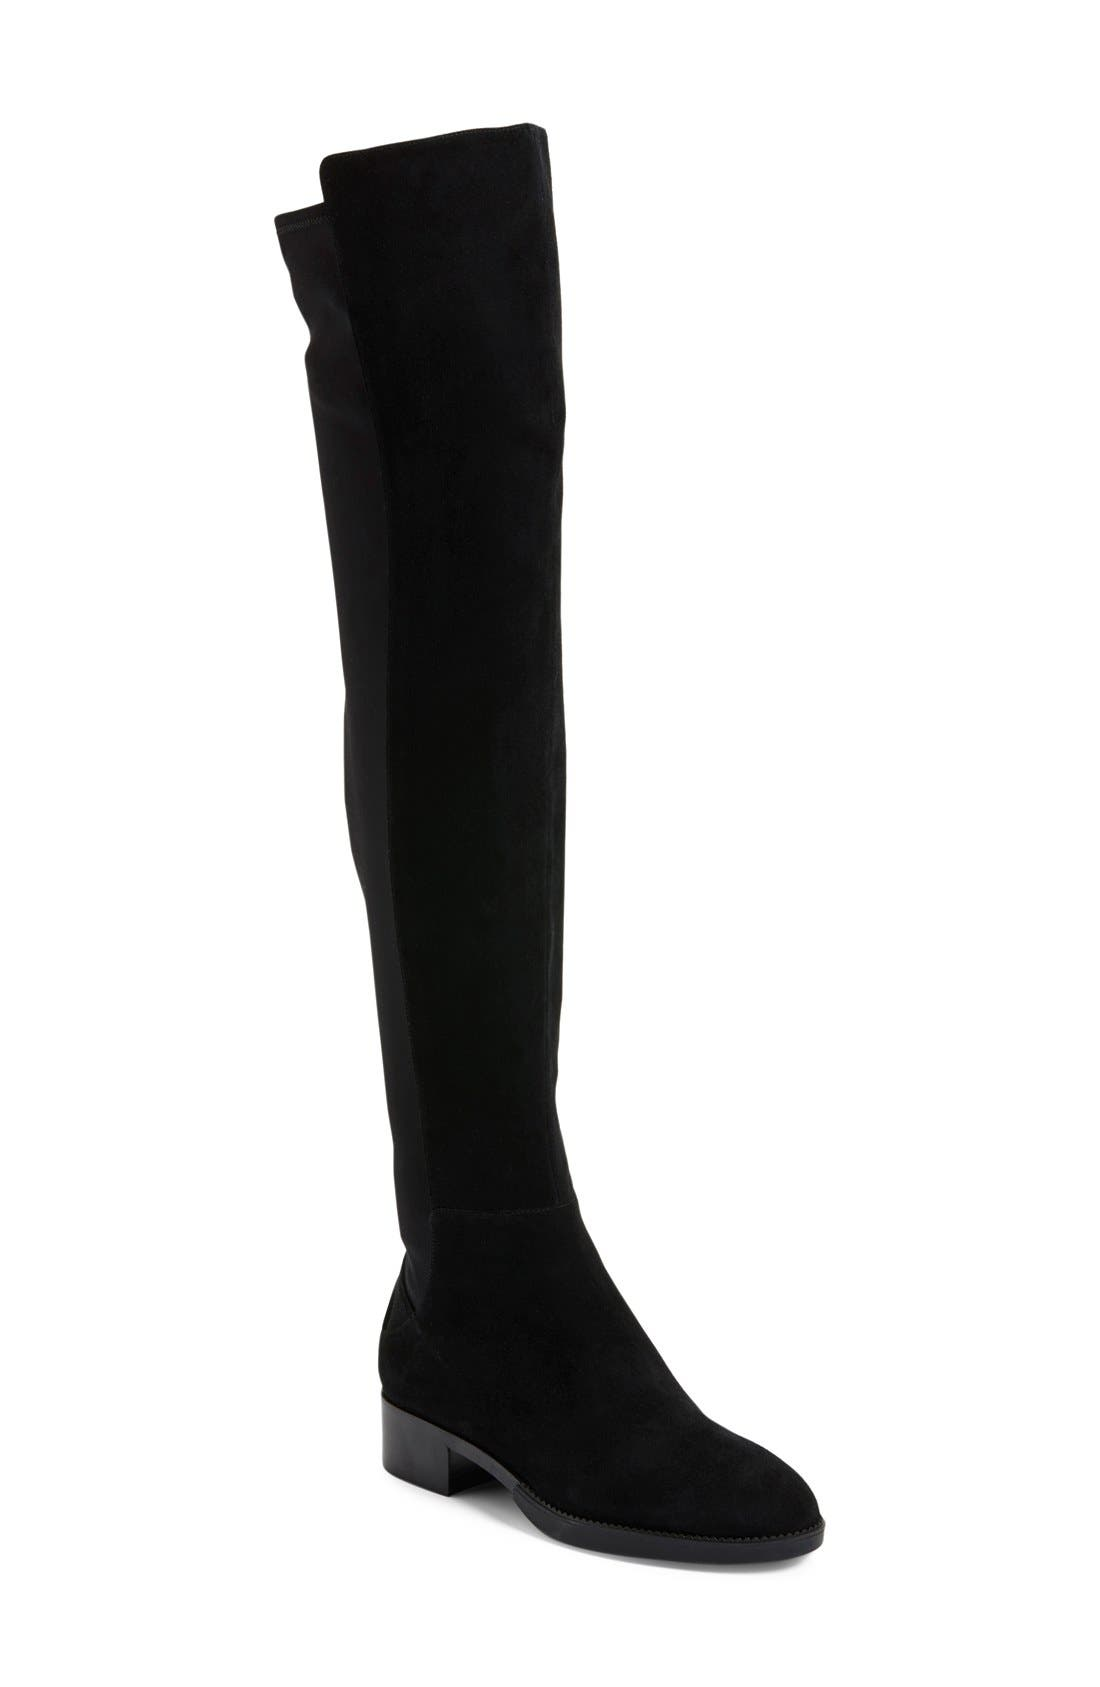 TORY BURCH 'Caitlin' Over the Knee Boot, Main, color, 001